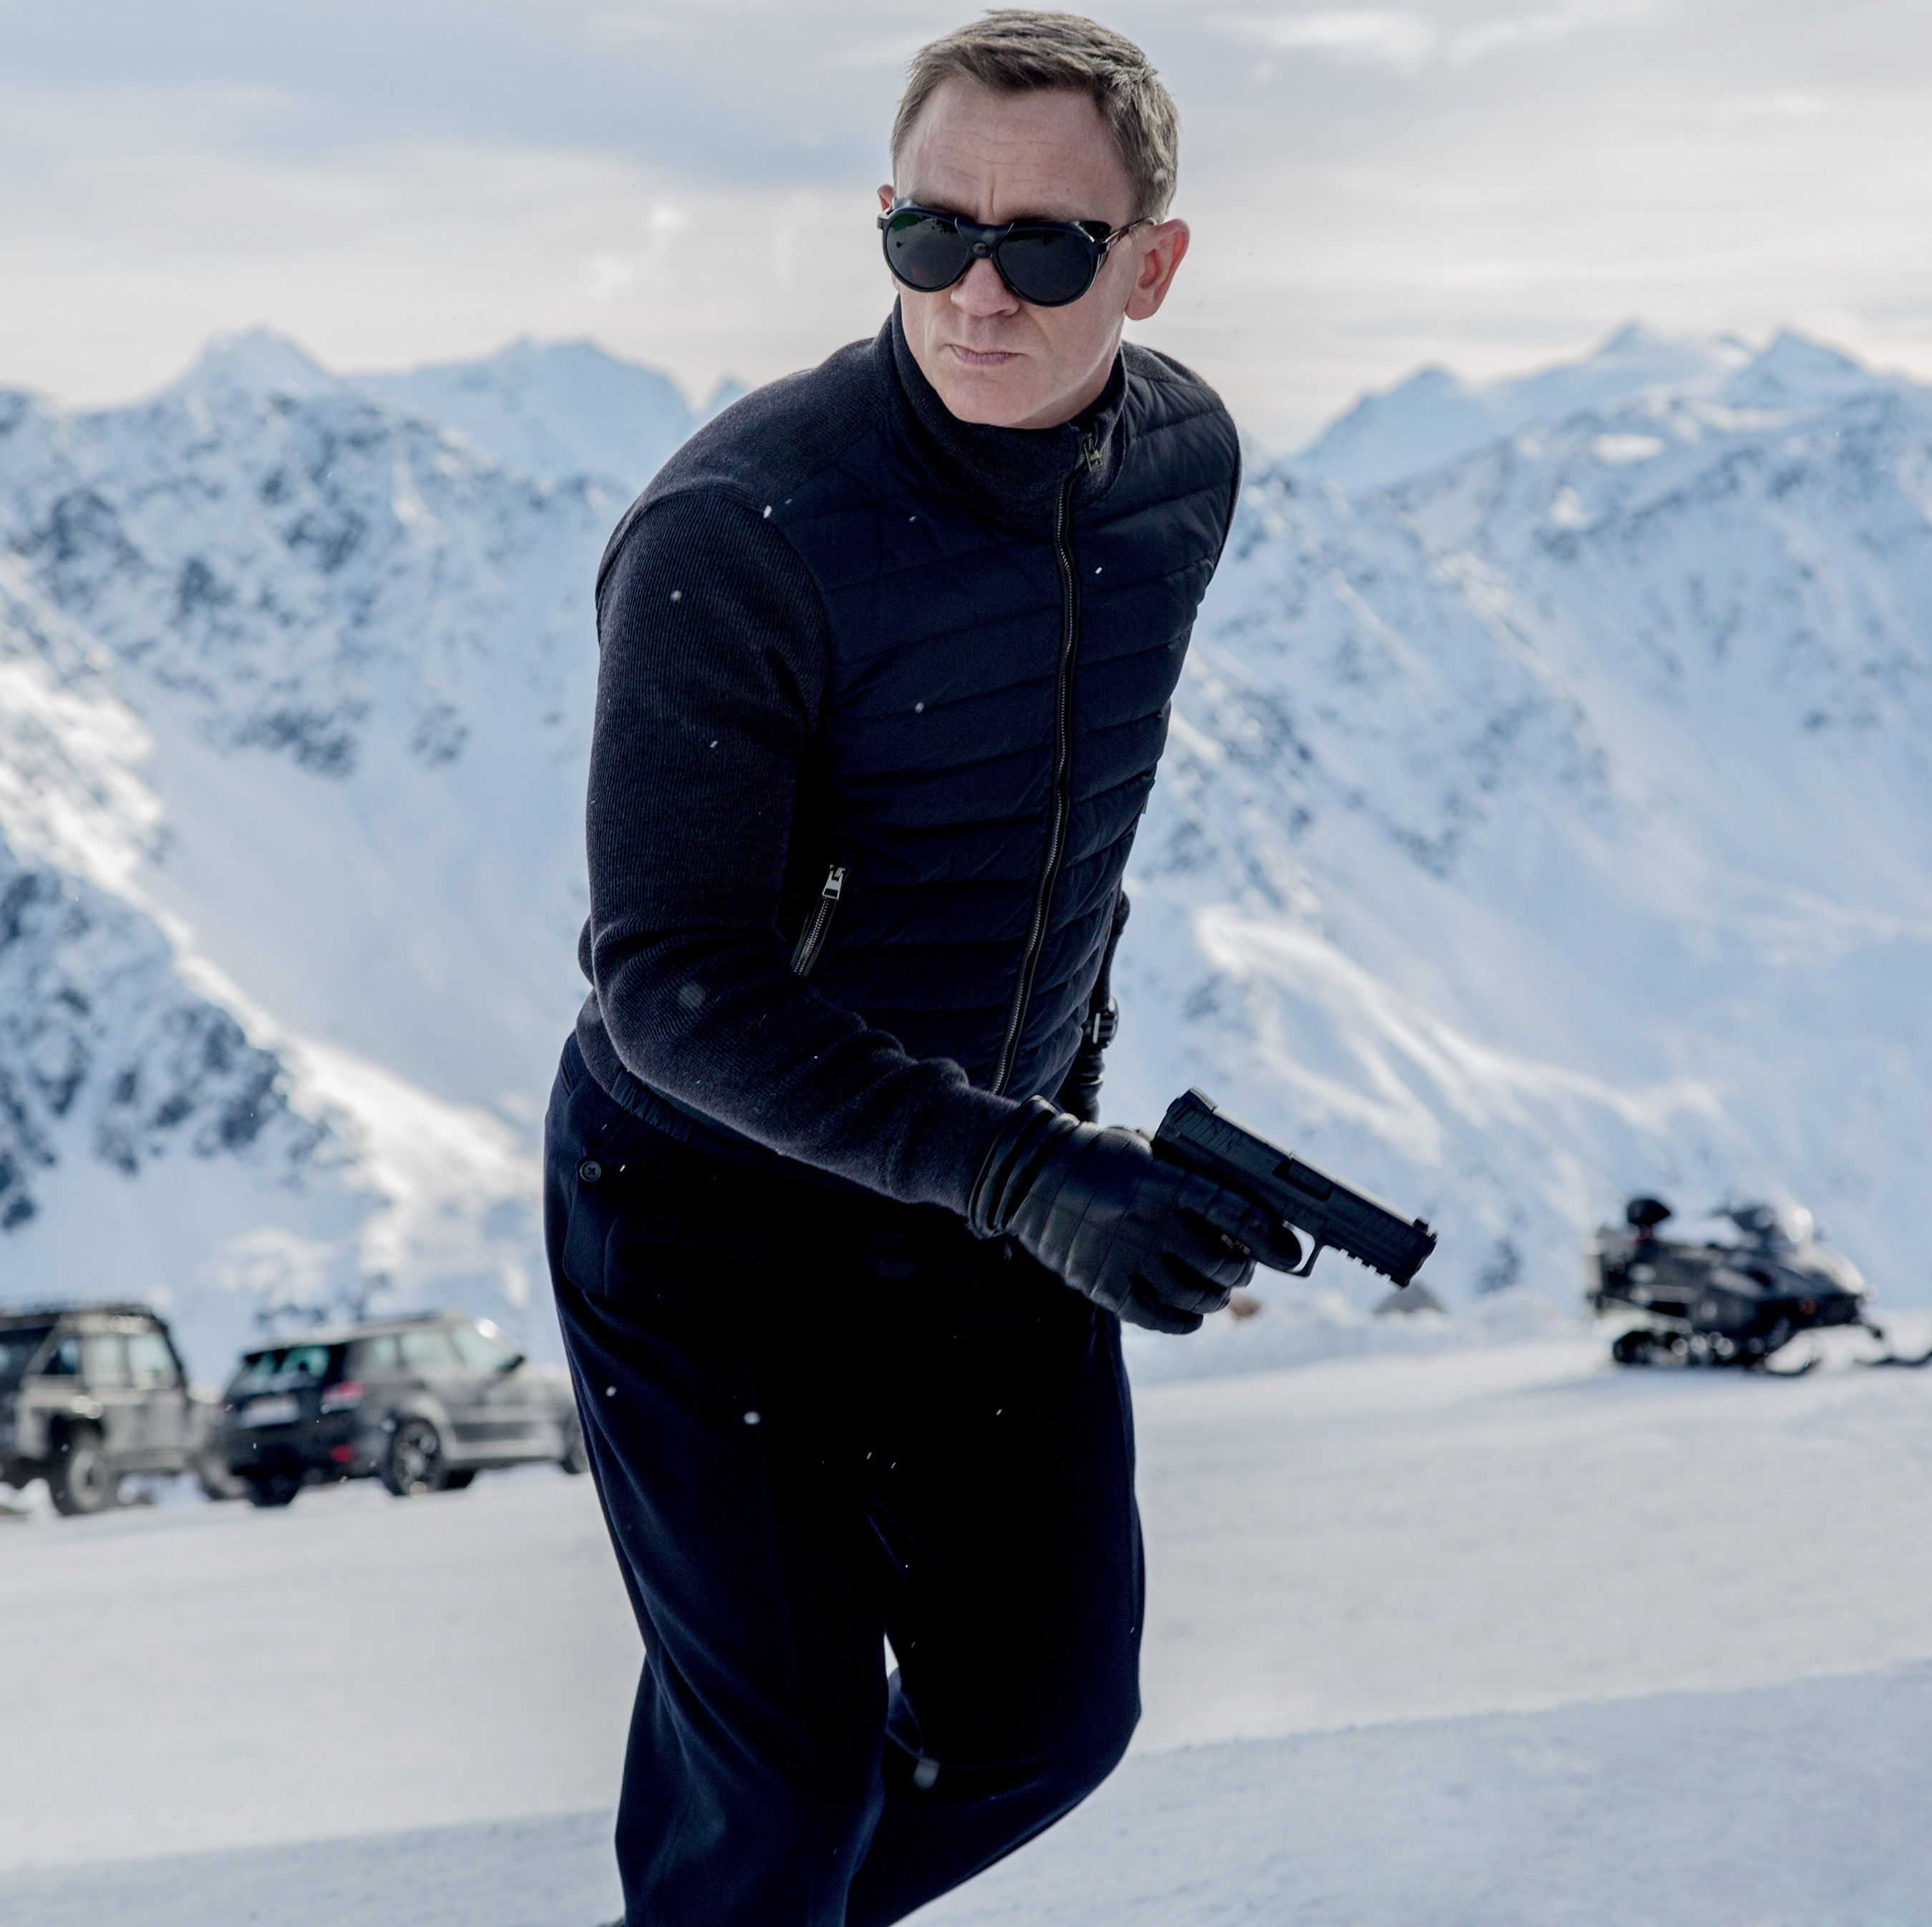 Should we be worried about James Bond 25?